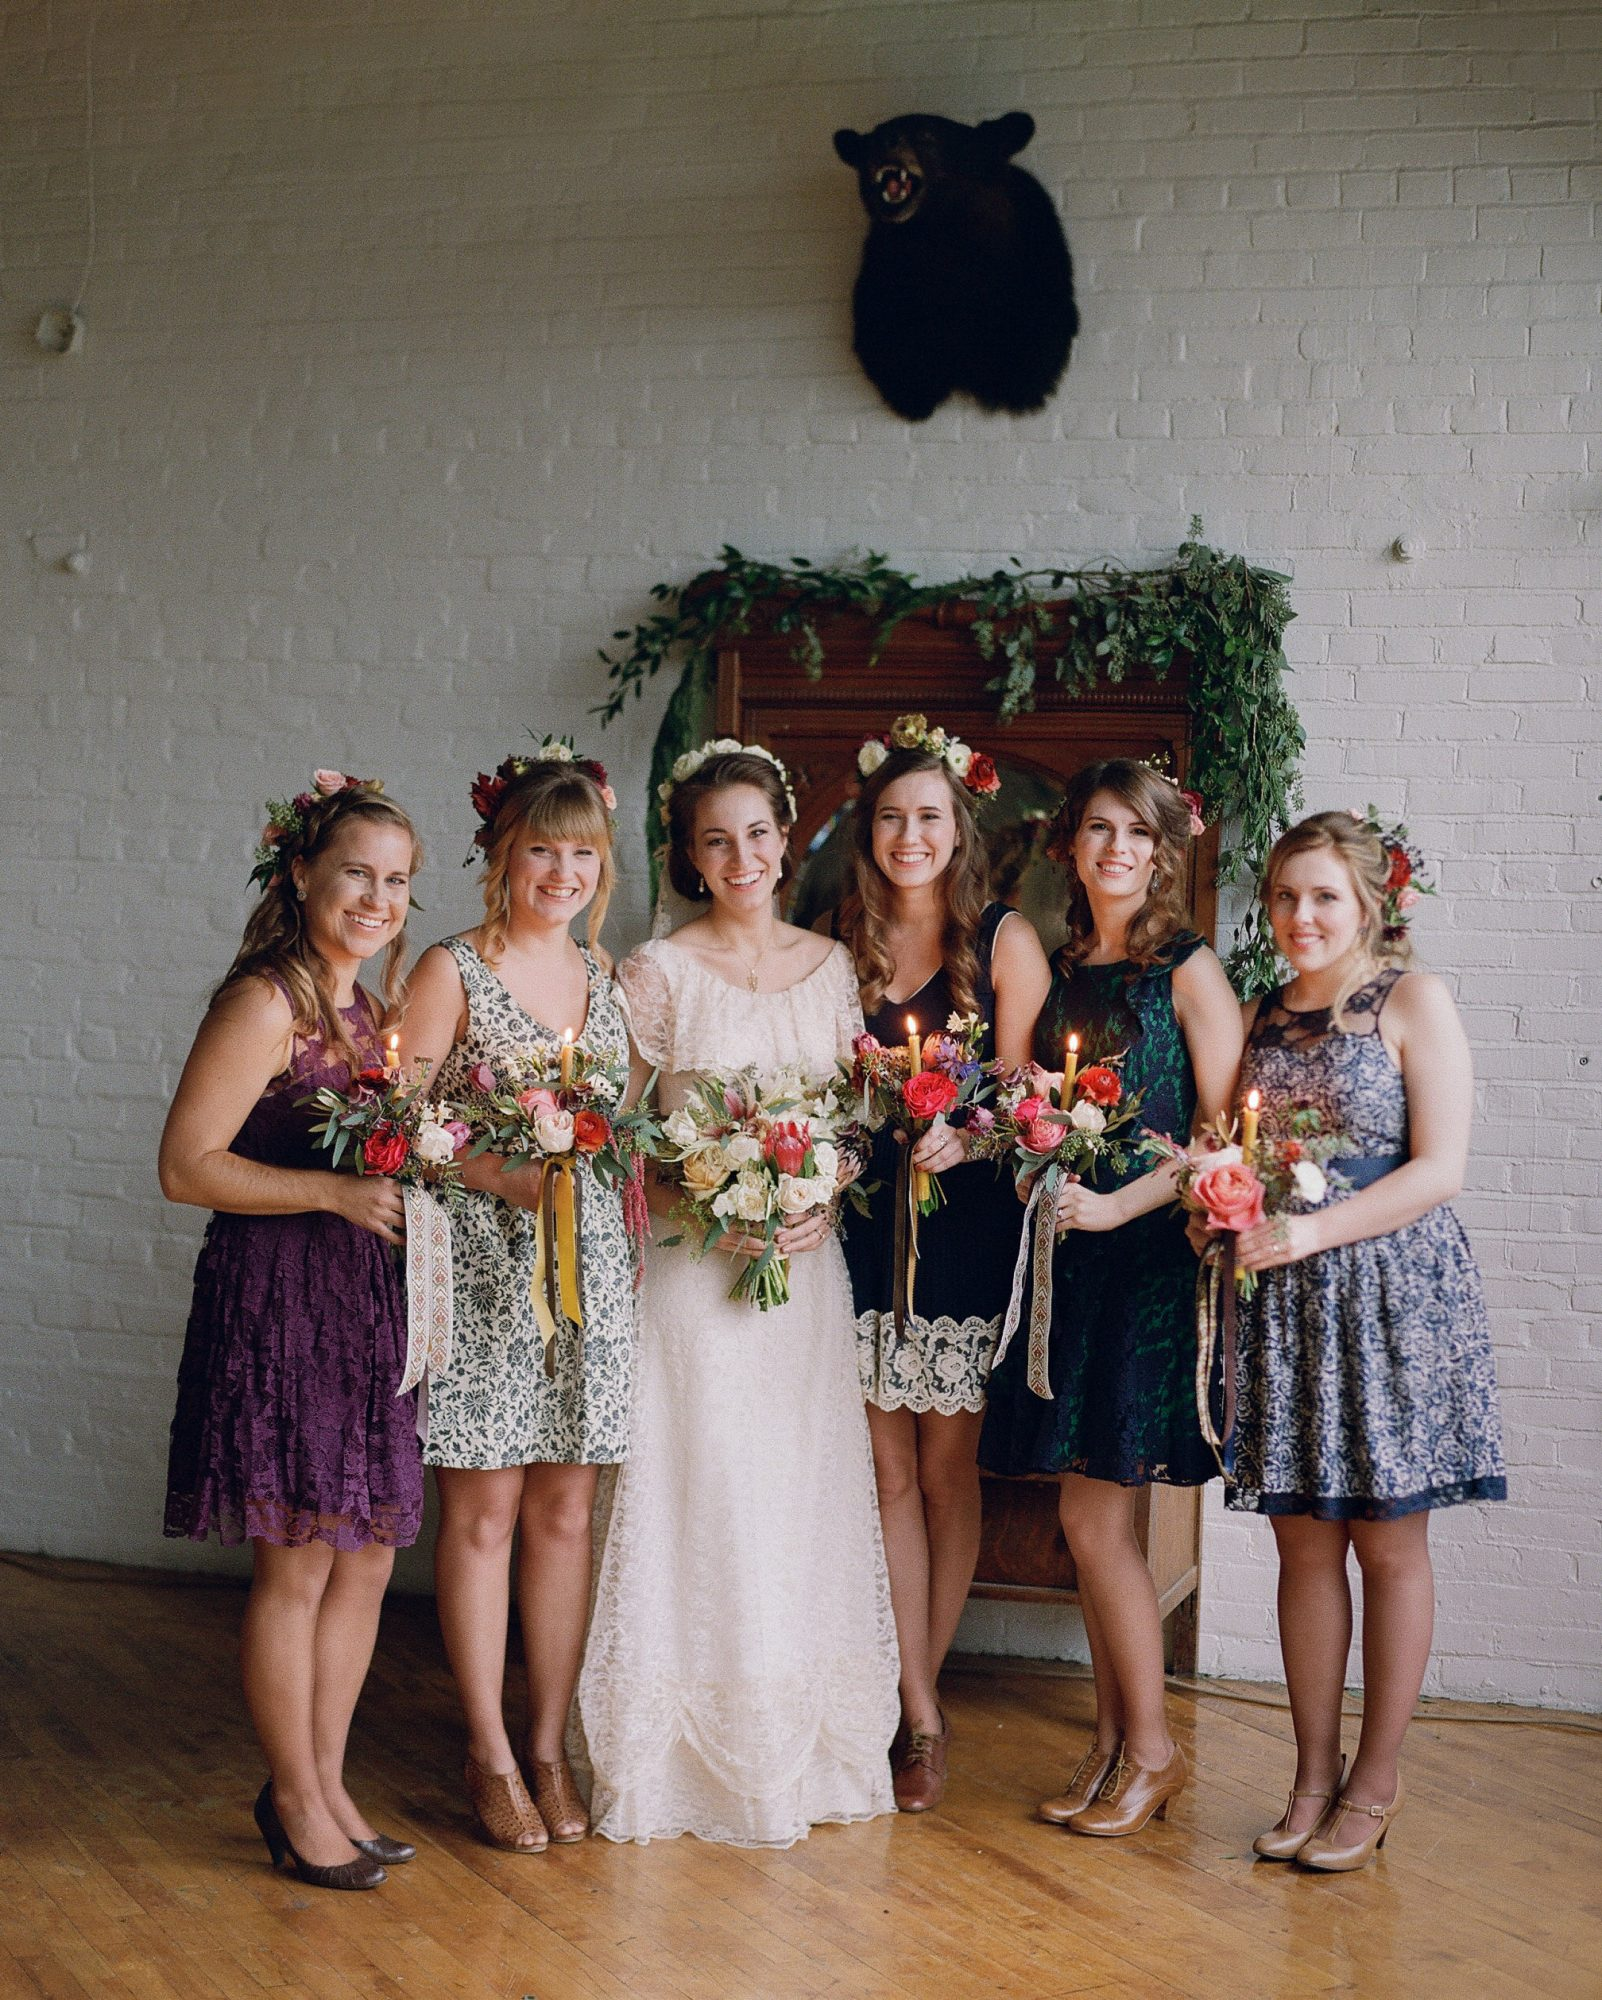 sidney-dane-wedding-bridesmaids-176-s112109-0815.jpg